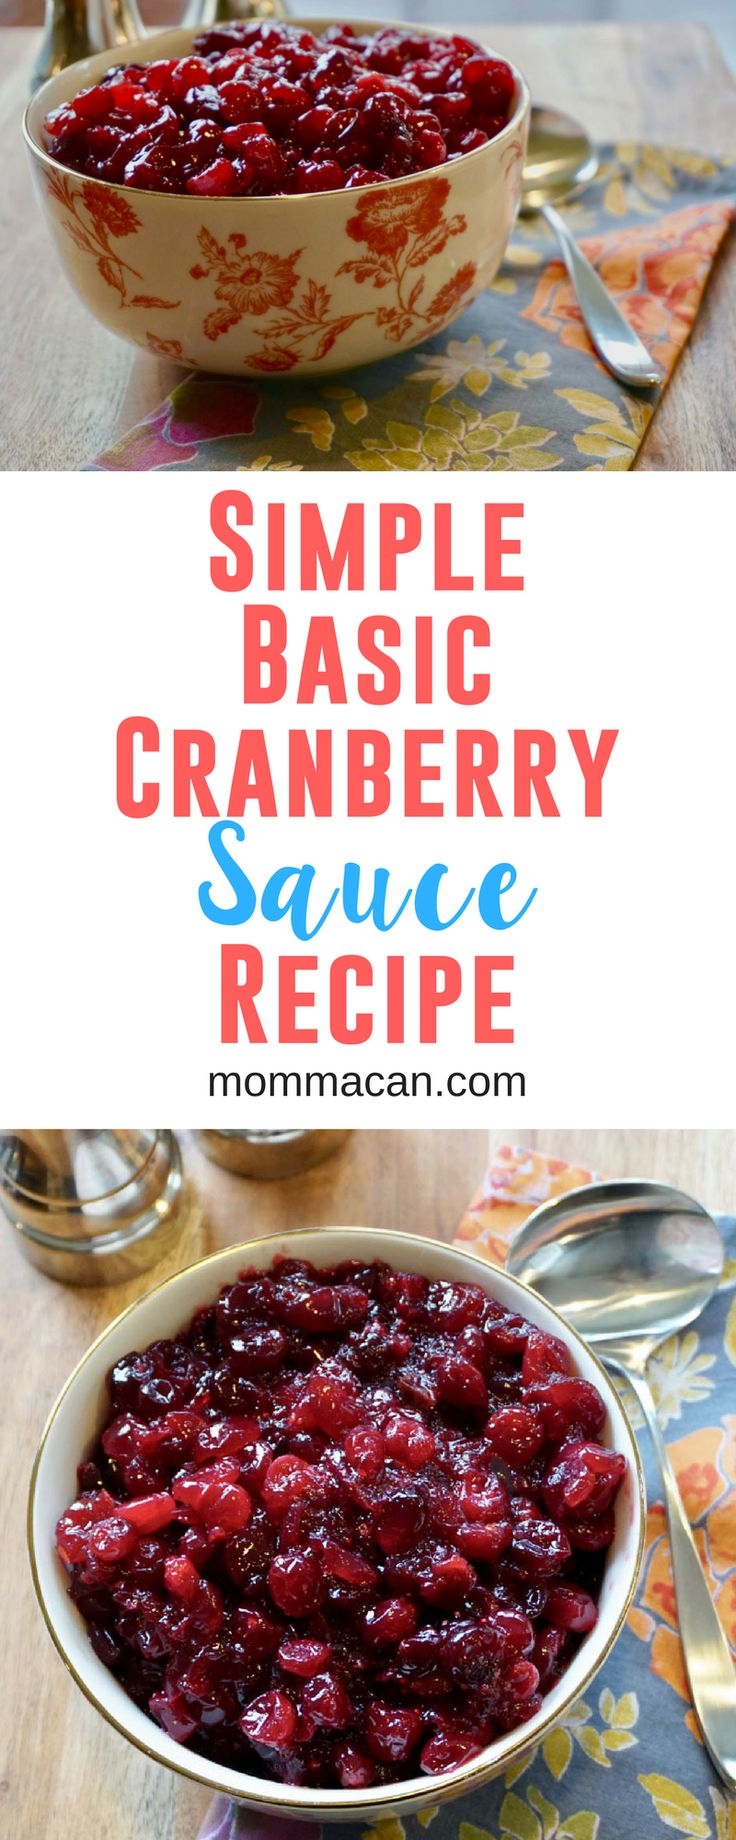 Look no further for the Best Cranberry Sauce Recipe Ever! This easy and delicious recipe takes only a few minutes to make and a handful of ingredients! The simple ingredients let the cranberries shine! It is the perfect combination of sweet and tart! The perfect complement to your holiday meal! - Momma Can #Thanksgiving #Christmas#cranberry#sauce#recipe